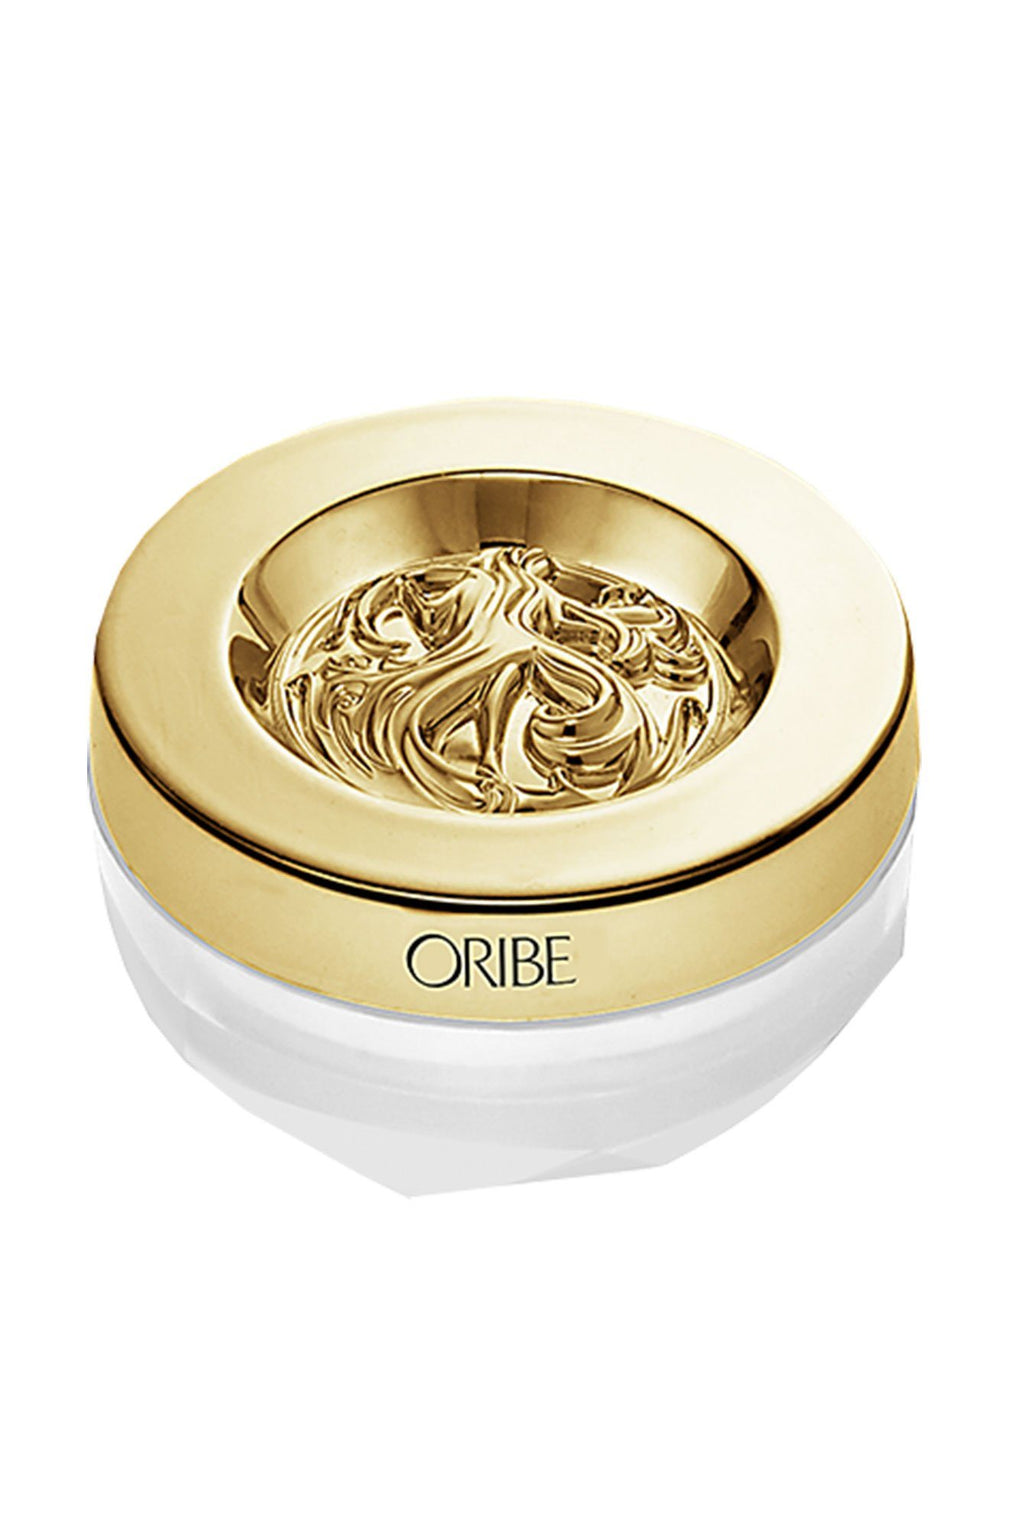 ORIBE | Balmessence Lip Treatment